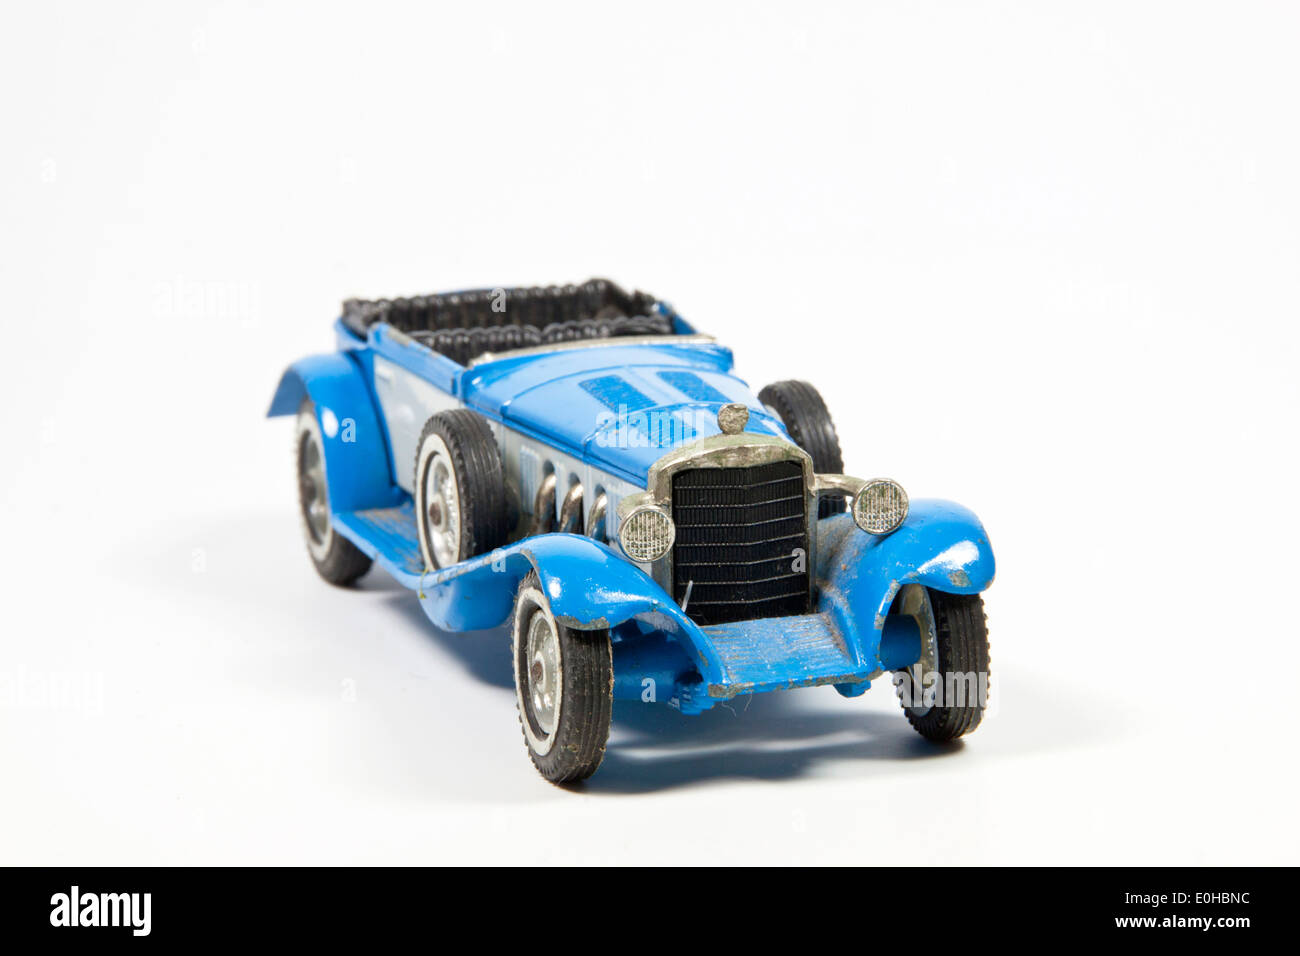 blue toy vintage model car on white - Stock Image